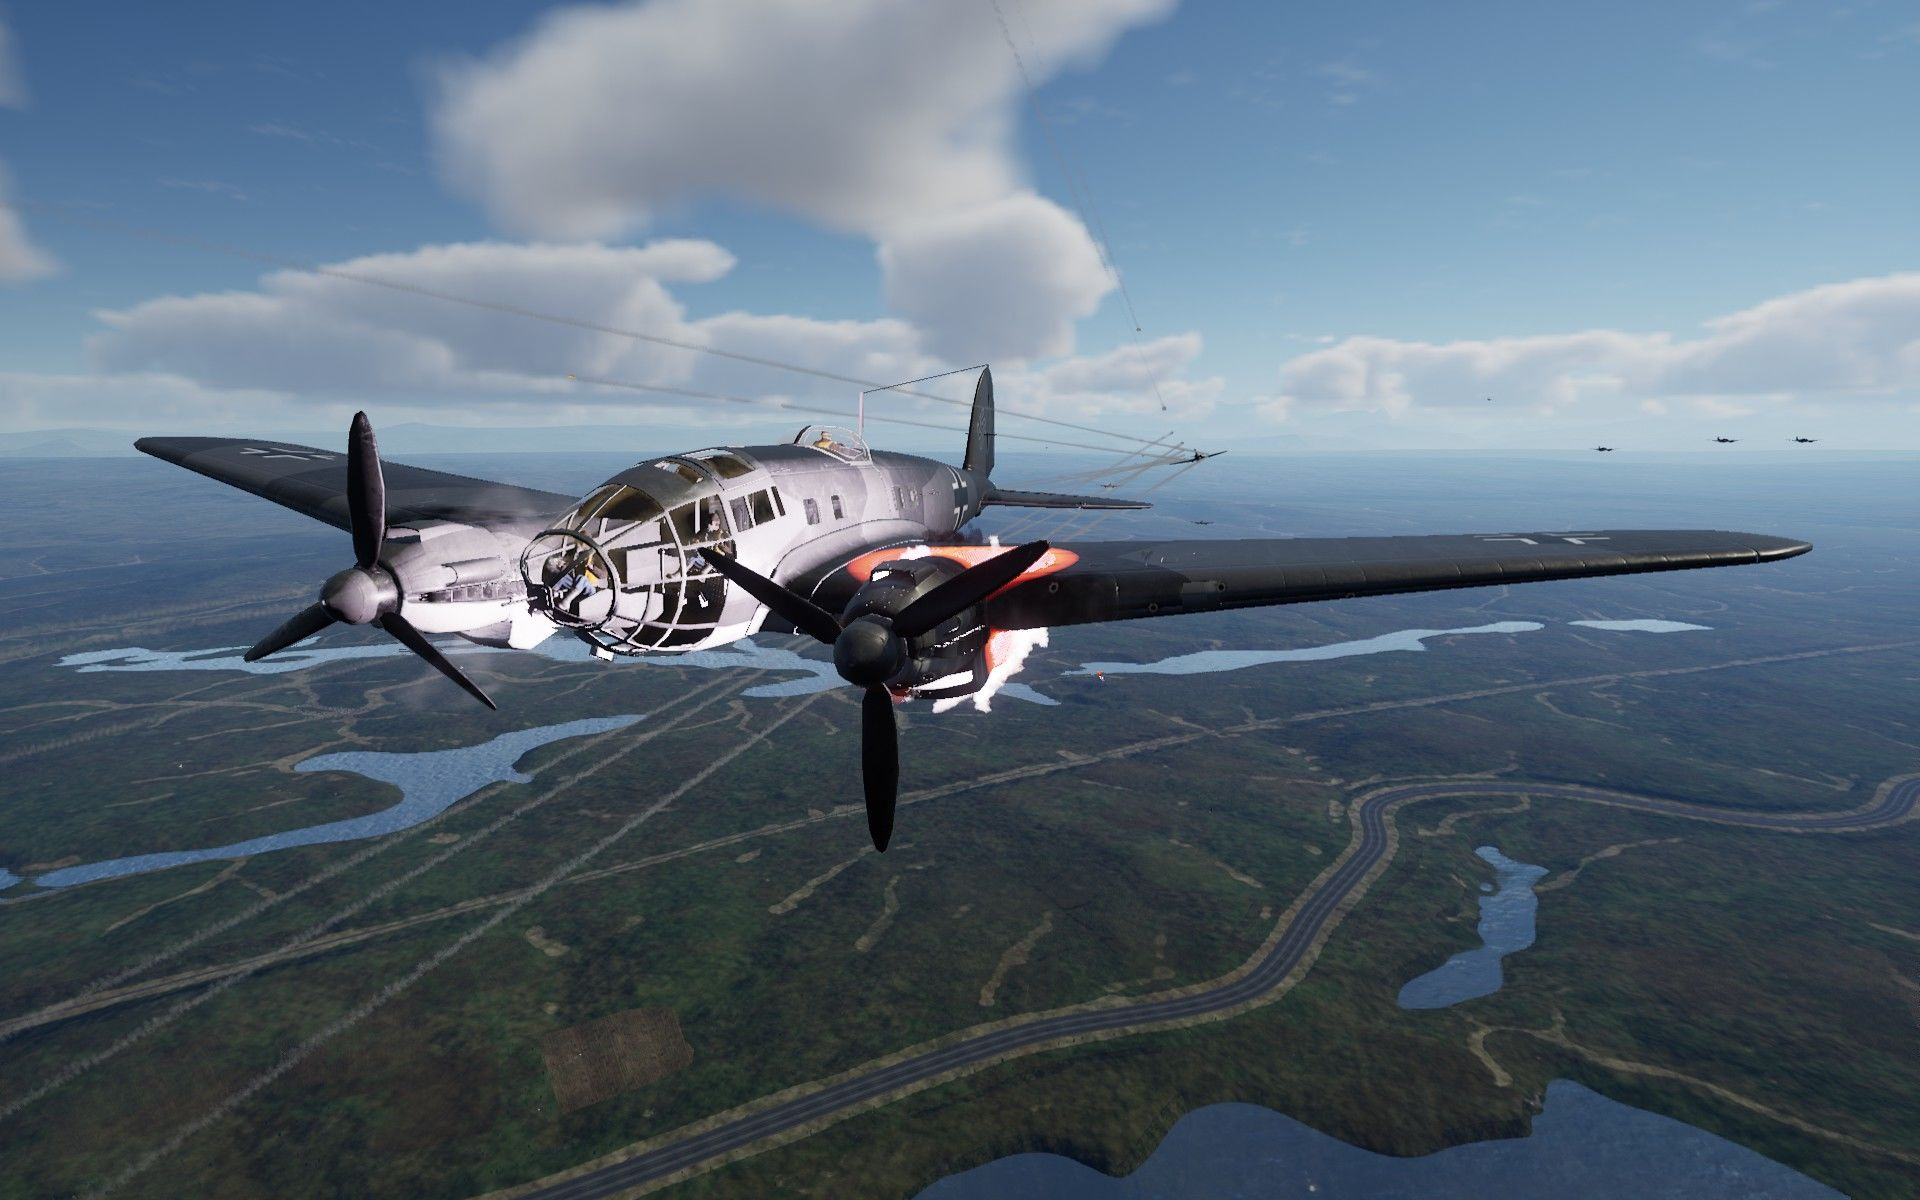 303 Squadron: Battle of Britain Screenshots for Windows